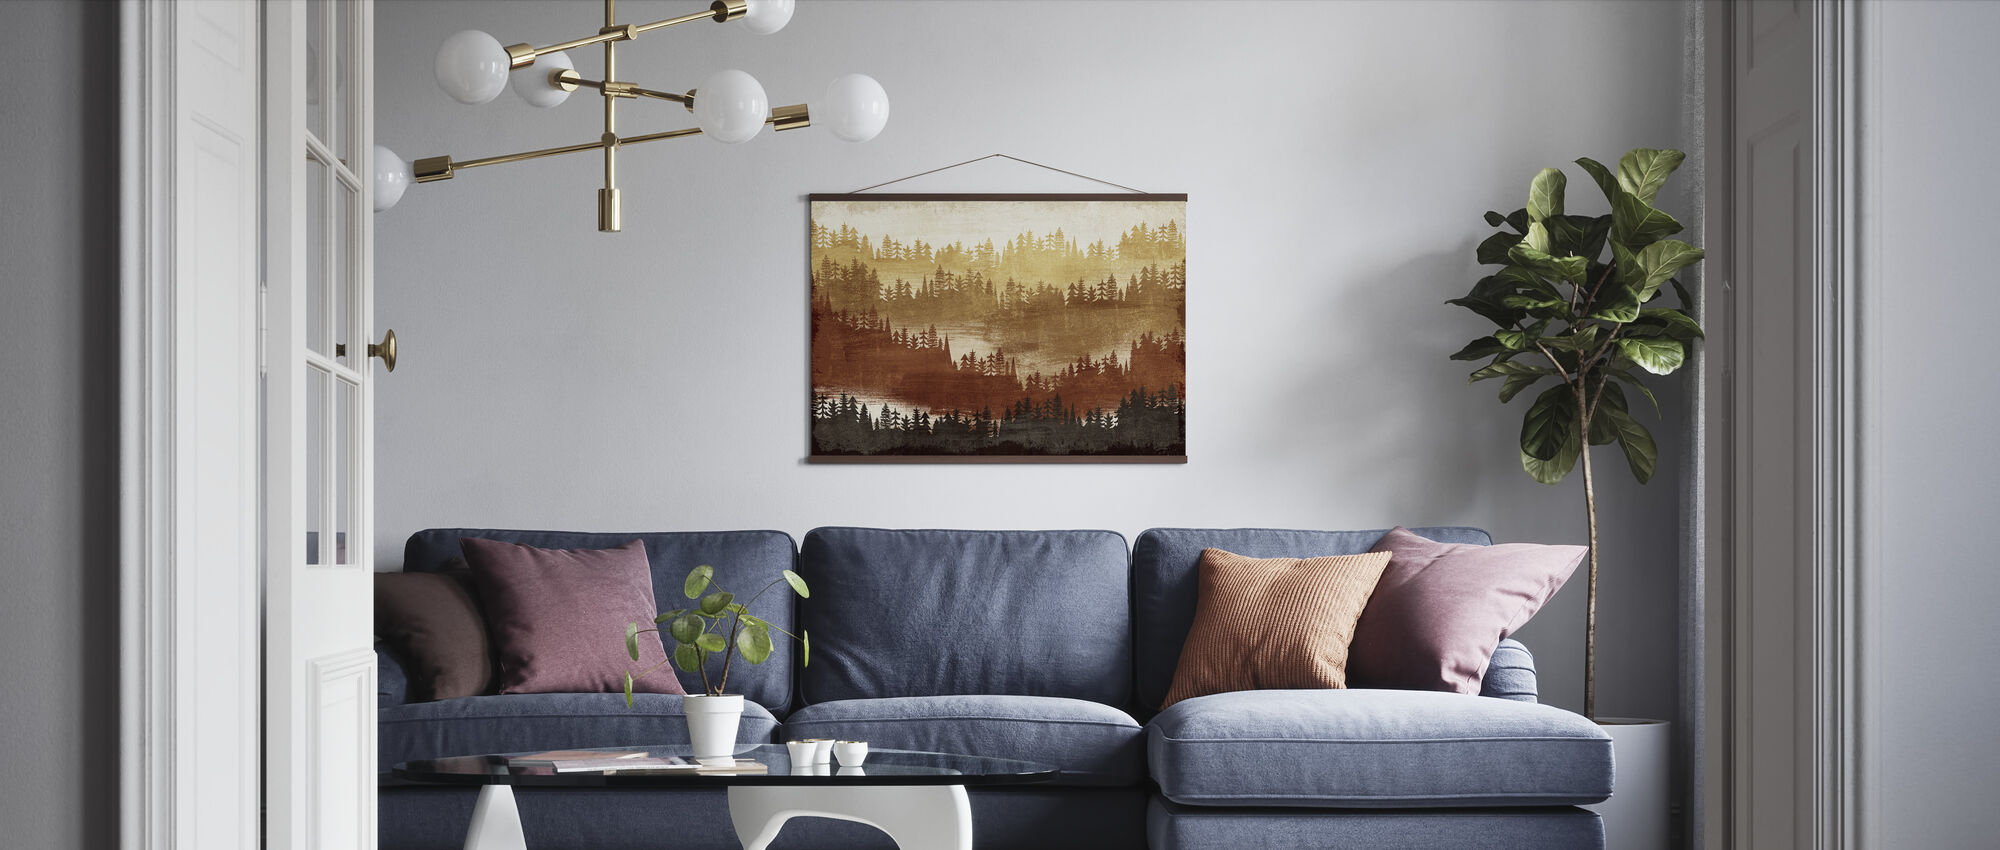 Mountainscape Spice - Poster - Living Room